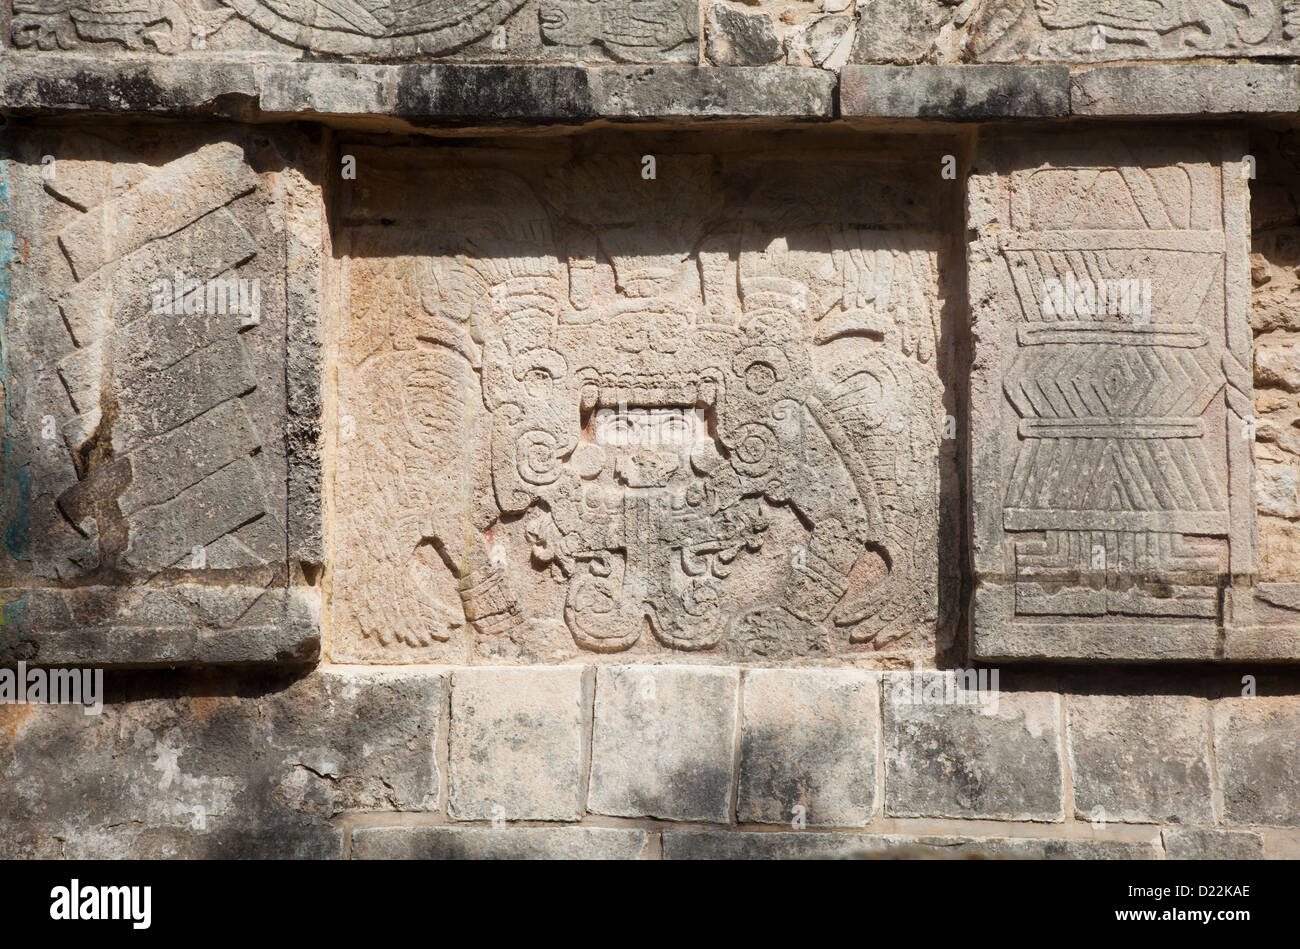 Detail on the Platform of Eagles and Jaguars at Chichen Itza, Mexico - Stock Image